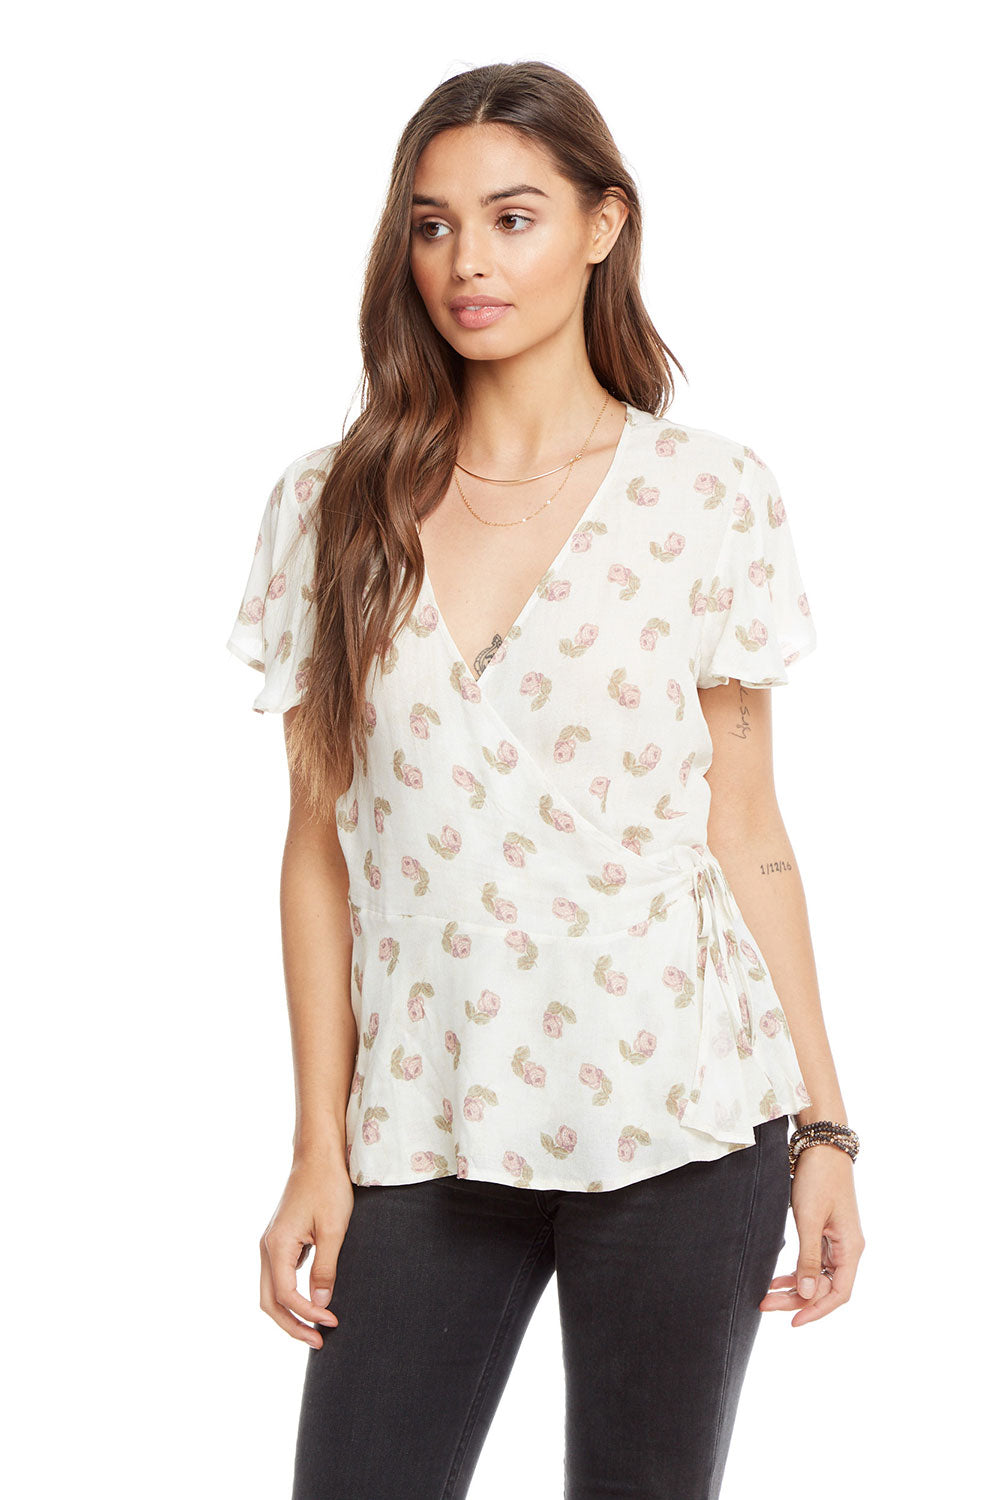 Heirloom Gauze Flutter Sleeve Surplice Wrap Top WOMENS chaserbrand4.myshopify.com